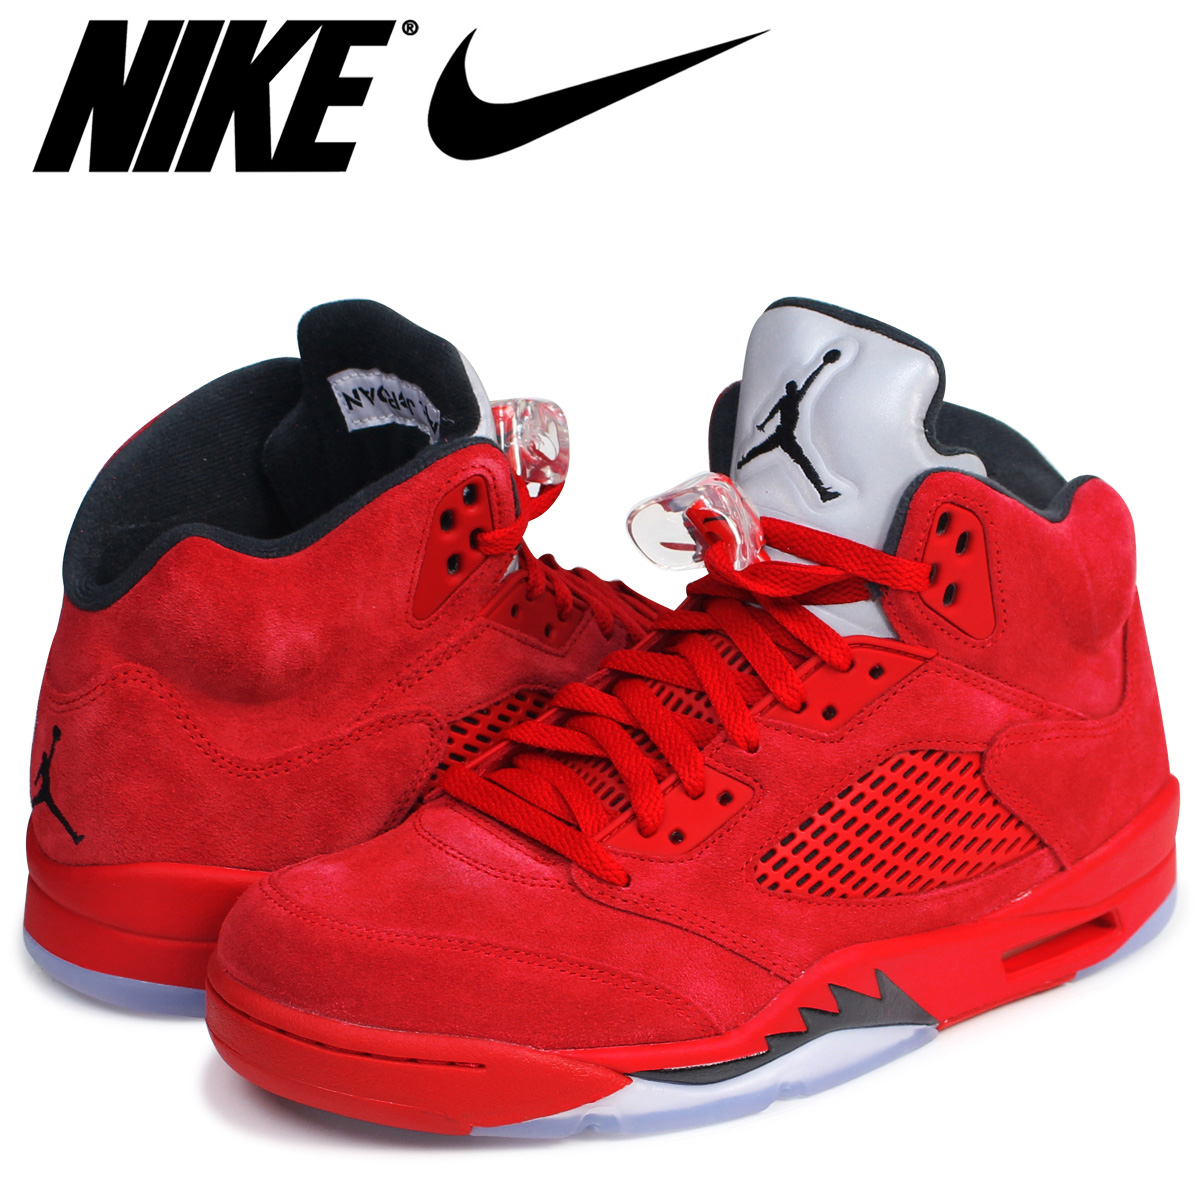 Sugar Online Shop: Nike NIKE Air Jordan sneakers AIR JORDAN 5 RETRO Air  Jordan 5 nostalgic 136,027-602 men's shoes red [7/13 Shinnyu load] |  Rakuten Global ...